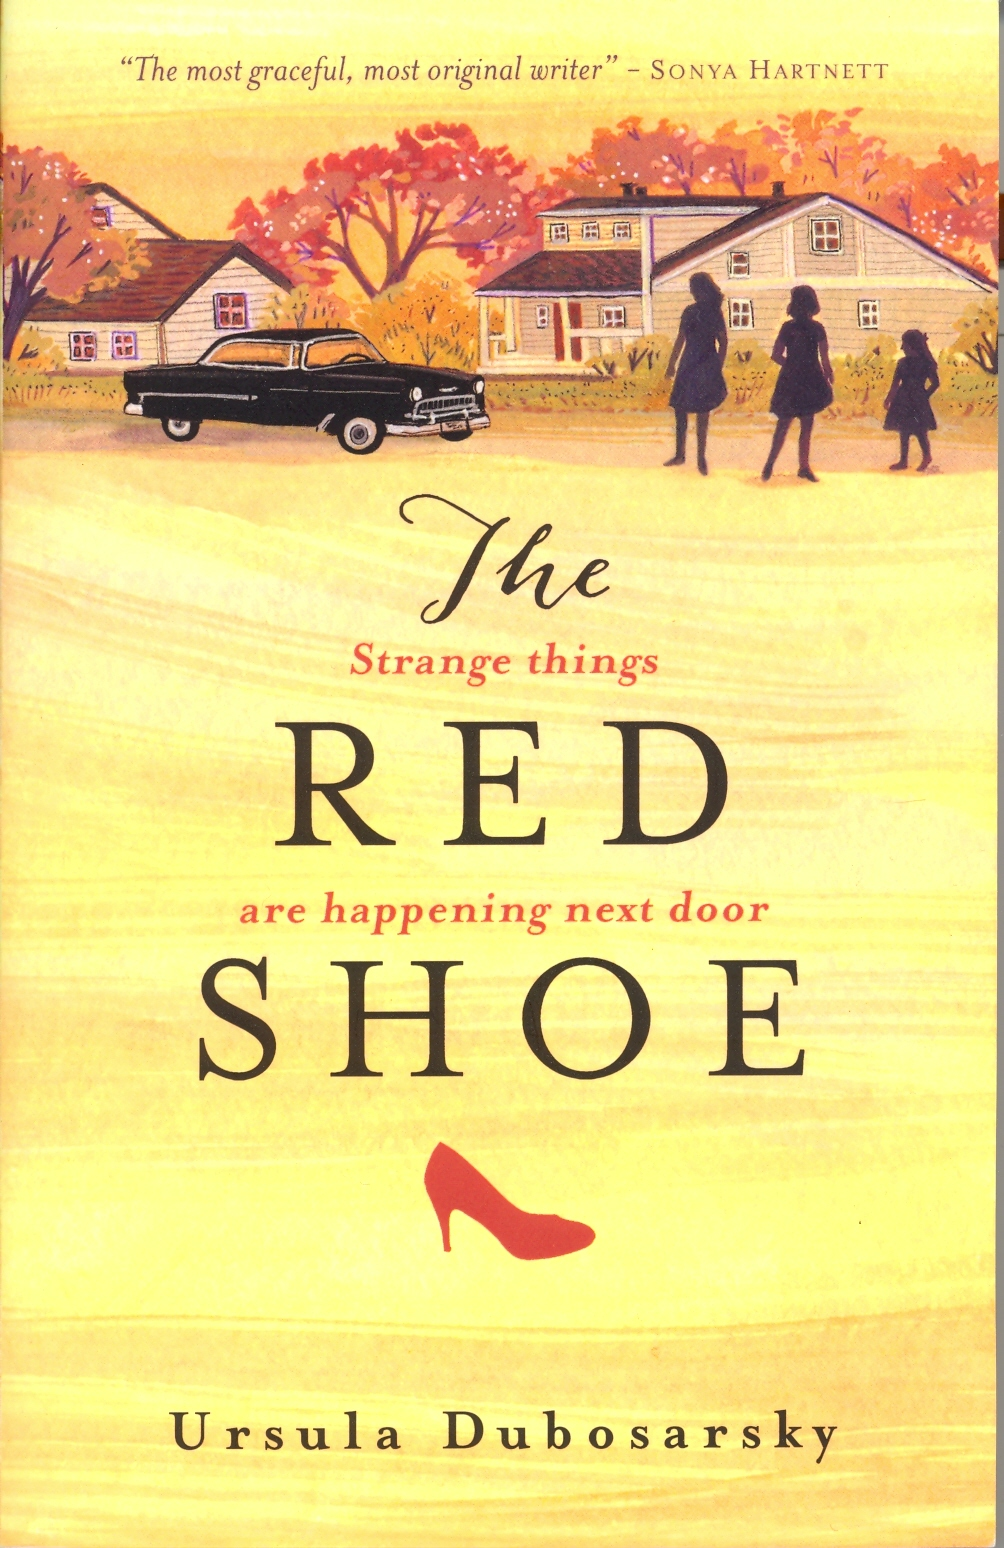 Awfully Big Reviews The Red Shoe By Ursula Dubosarsky Reviewed By